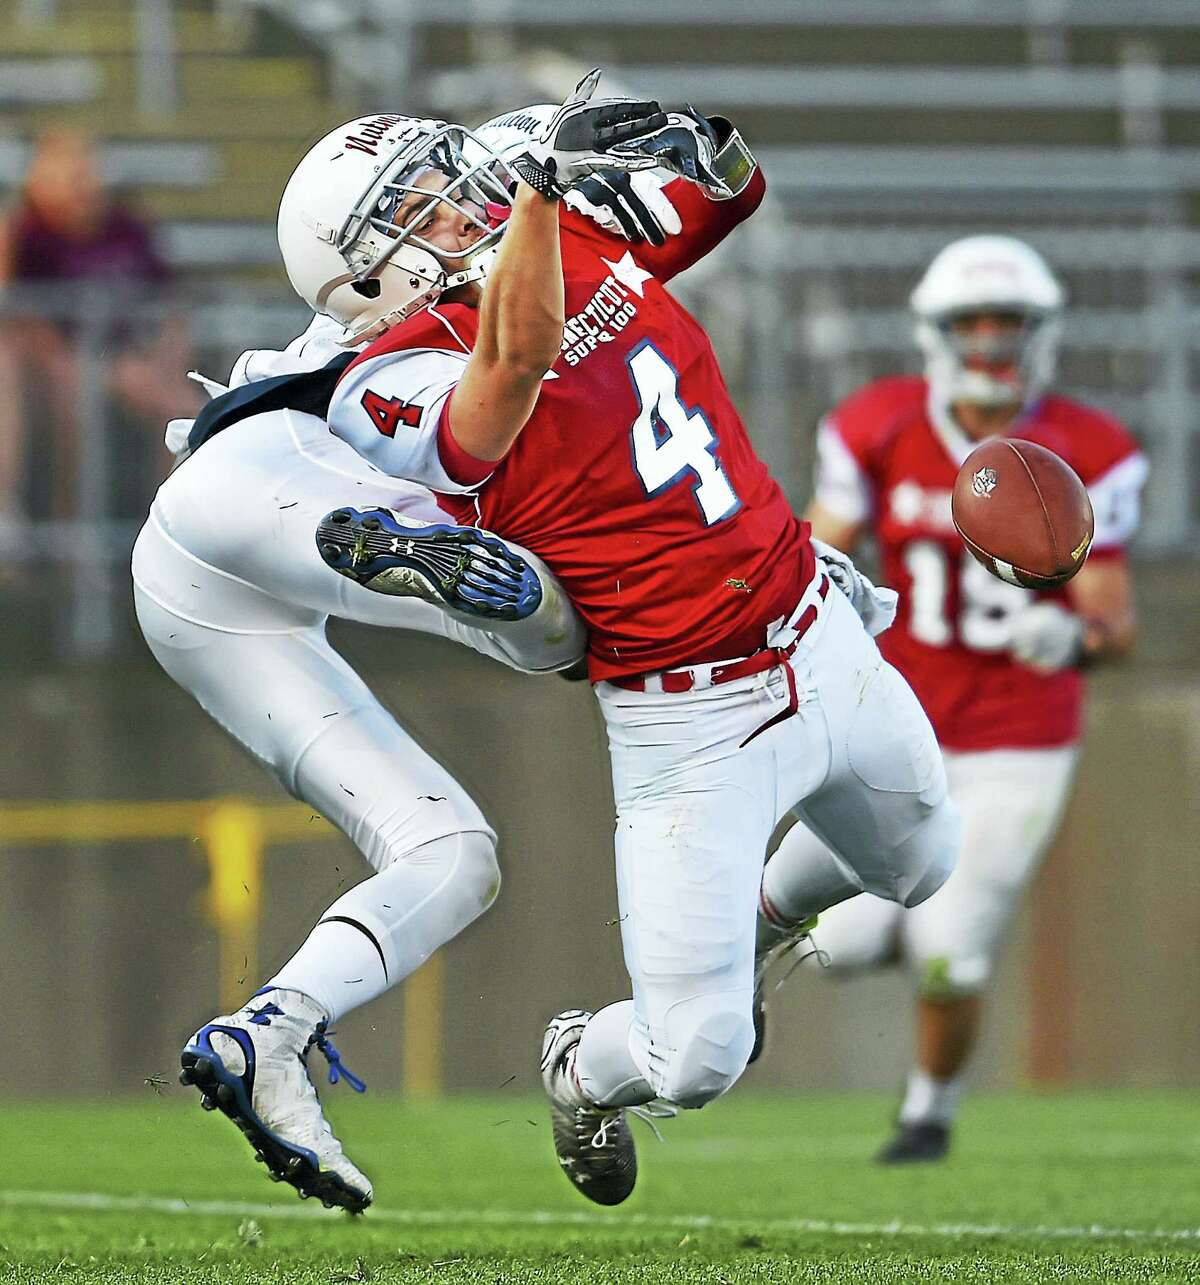 (Catherine Avalone/New Haven Register) A Constitution defenseman breaks up a pass intended for Nutmeg's Anthony Caramanica - Xavier, Saturday, June 25, 2016, in the Super 100 Classic 2016 High School Senior All-Star Football game sponsored by the Connecticut High School Coaches Association. Team Constitution defeated Team Nutmeg, 33-9.